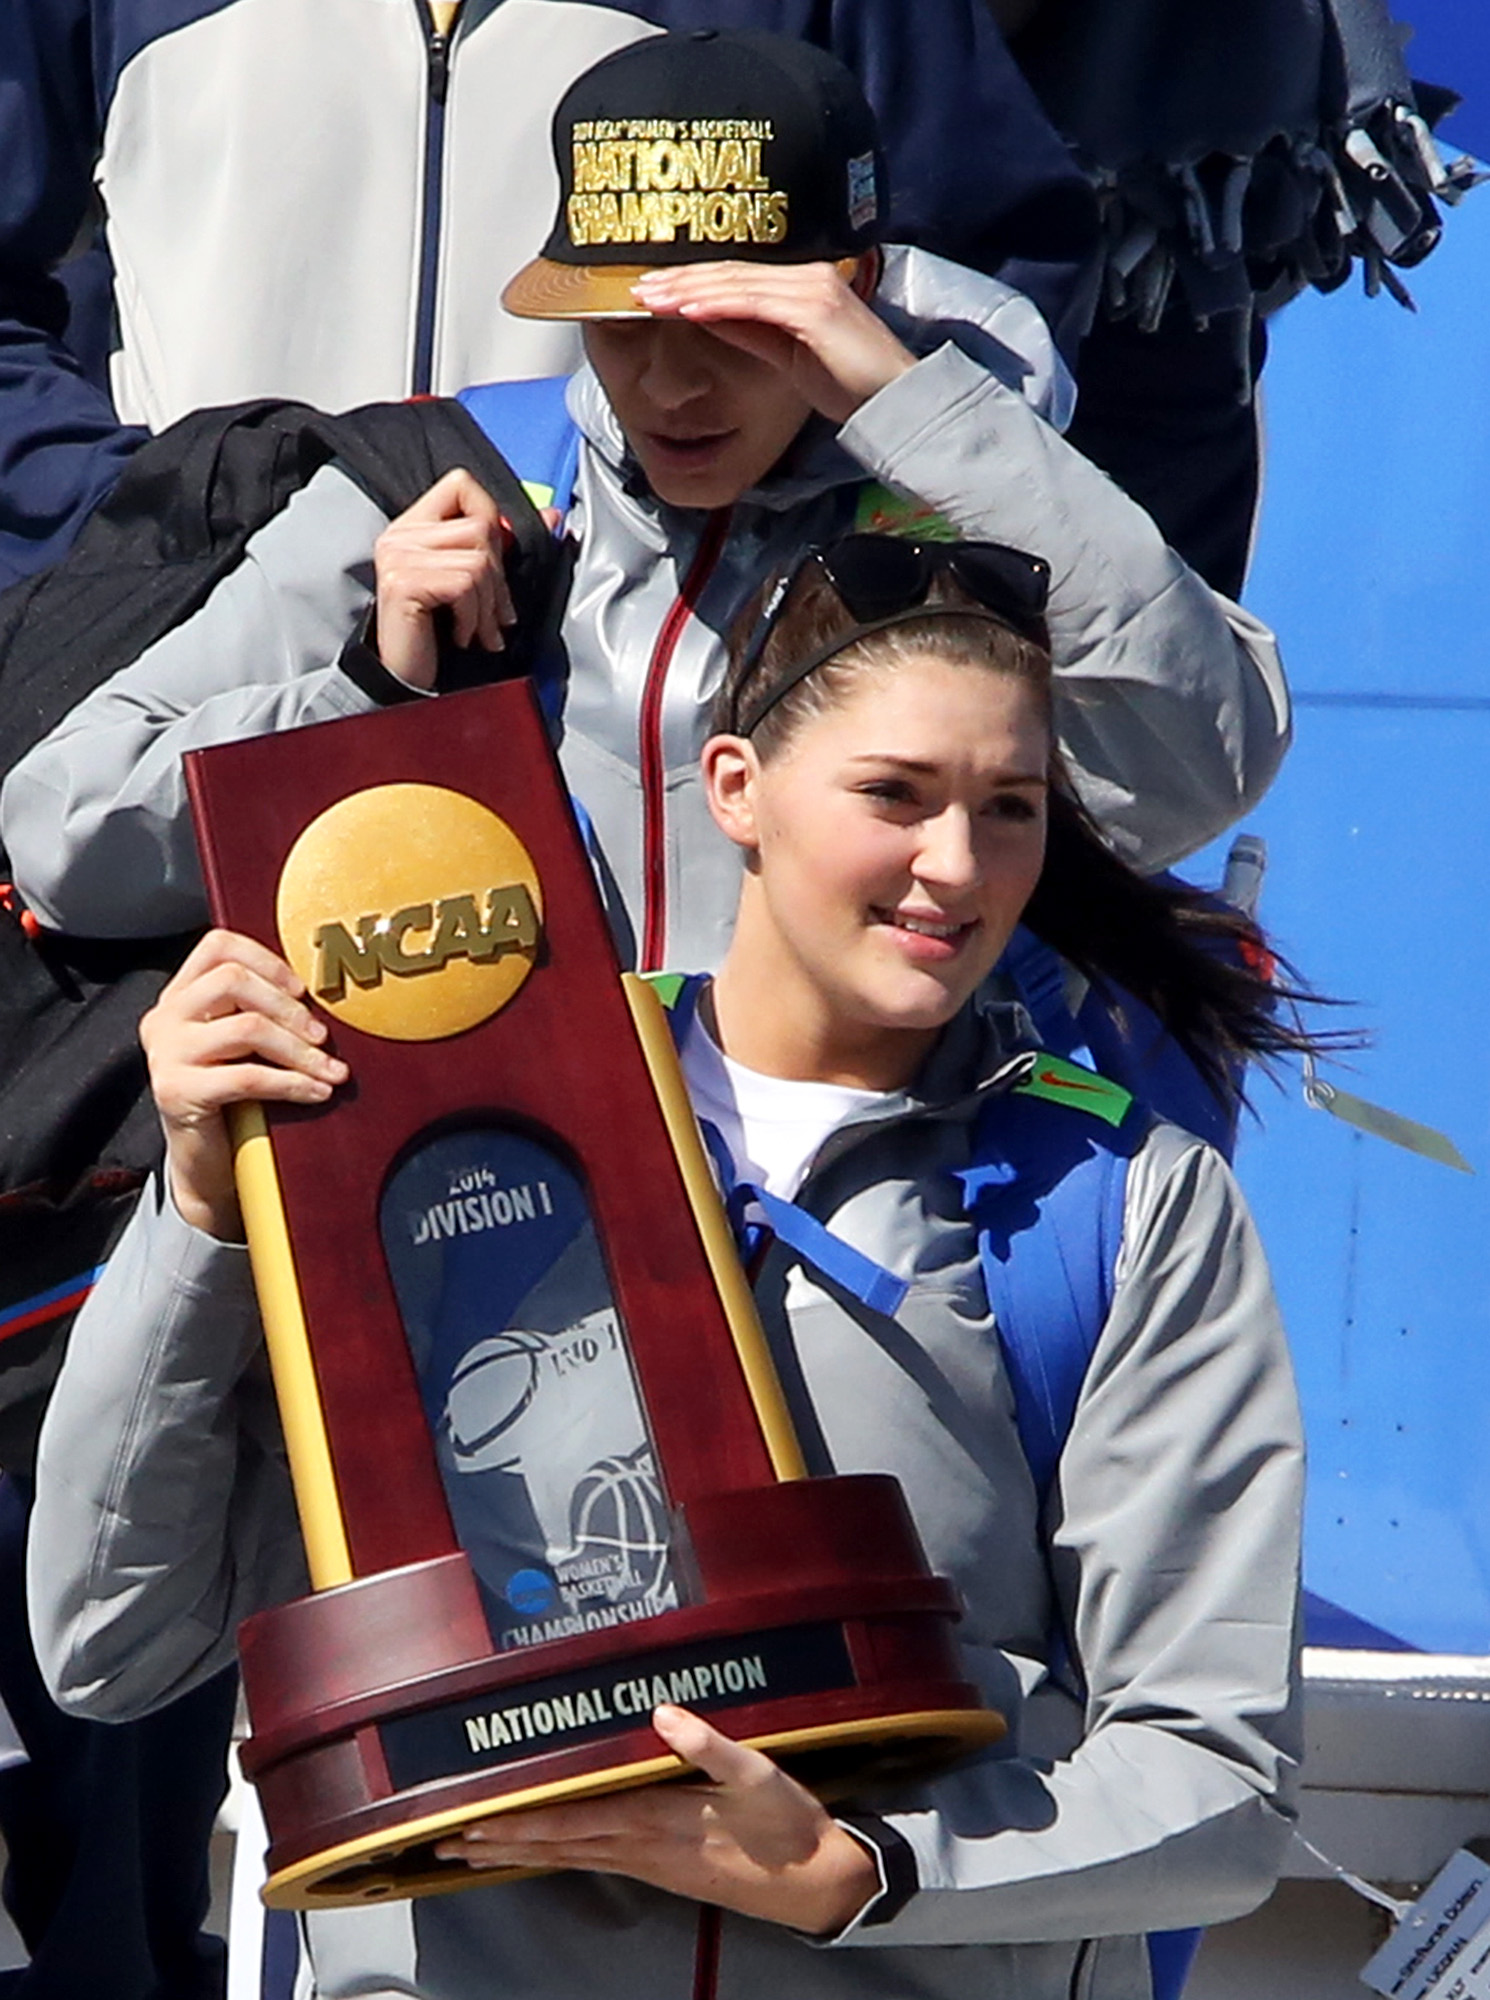 Connecticut's Stephanie Dolson holds the NCAA National Championship Trophy to fans as the team arrives at Bradley International Airport in Windsor Locks, Conn., Wednesday, April 9, 2014, the day after the Huskies defeated Notre Dame to clinch their ninth national championship